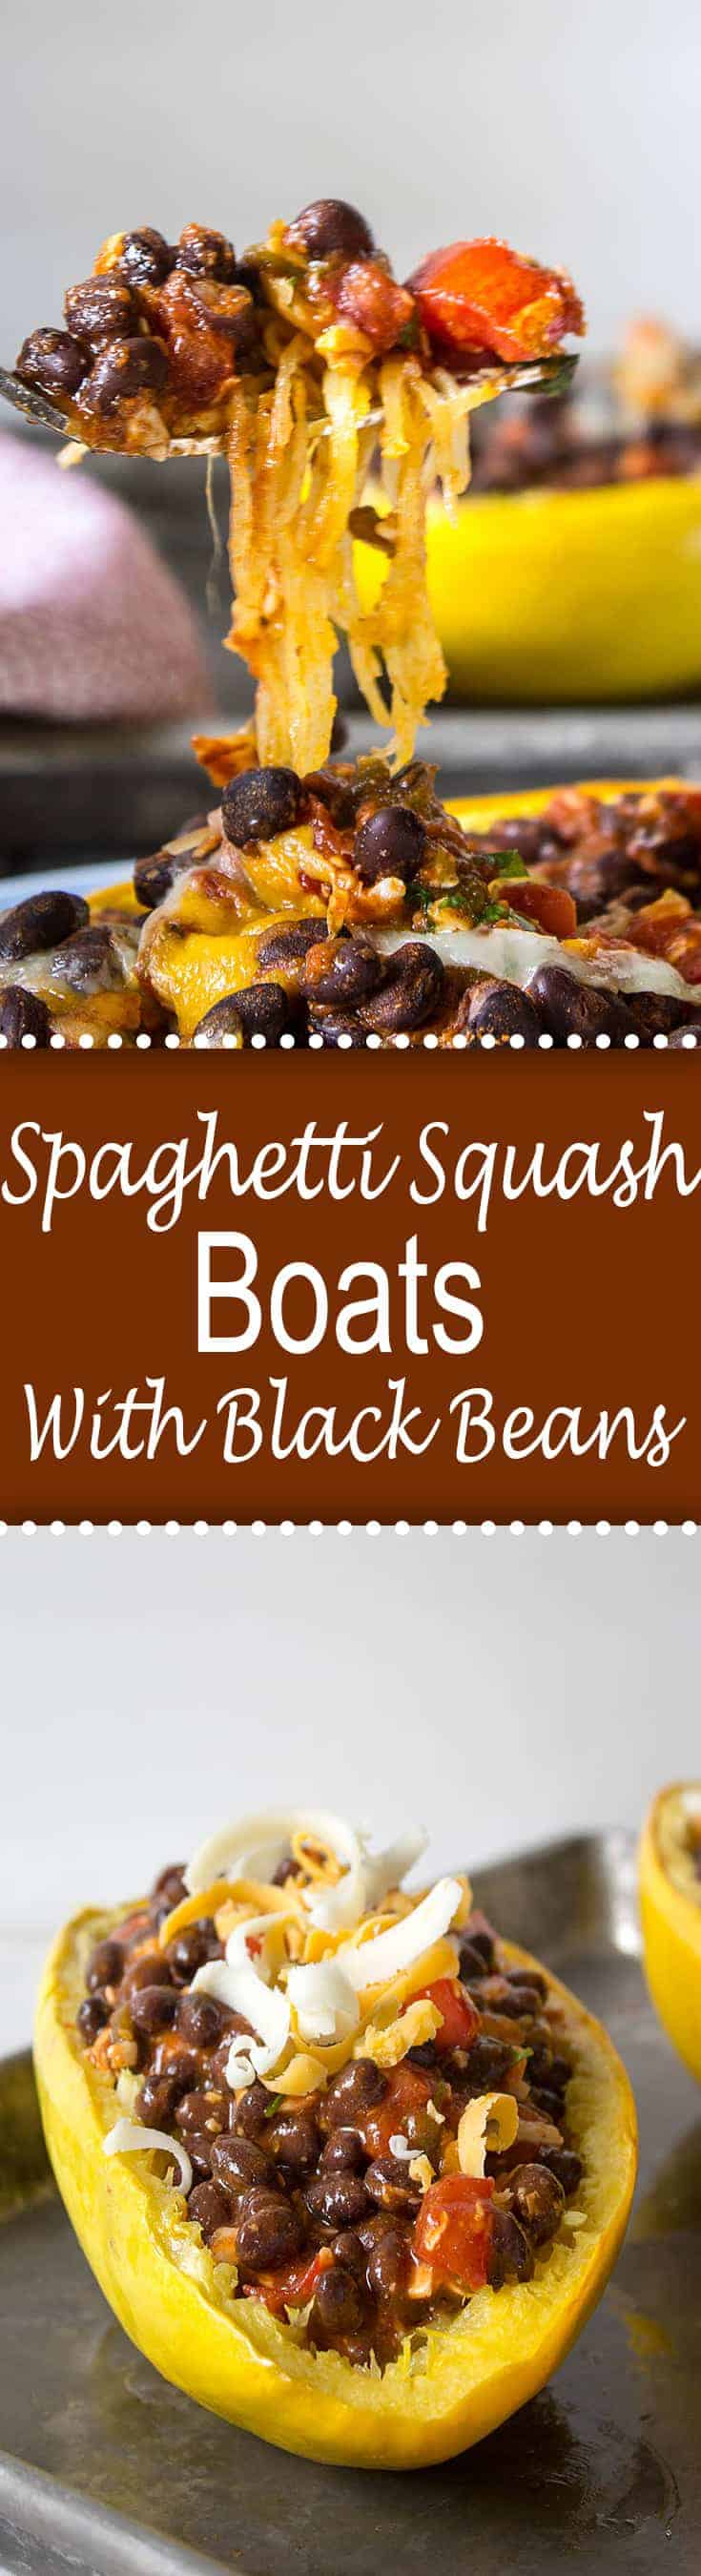 Spaghetti Squash Boats filled with a black bean enchilada filling. This delicious vegetarian dish is also gluten free.